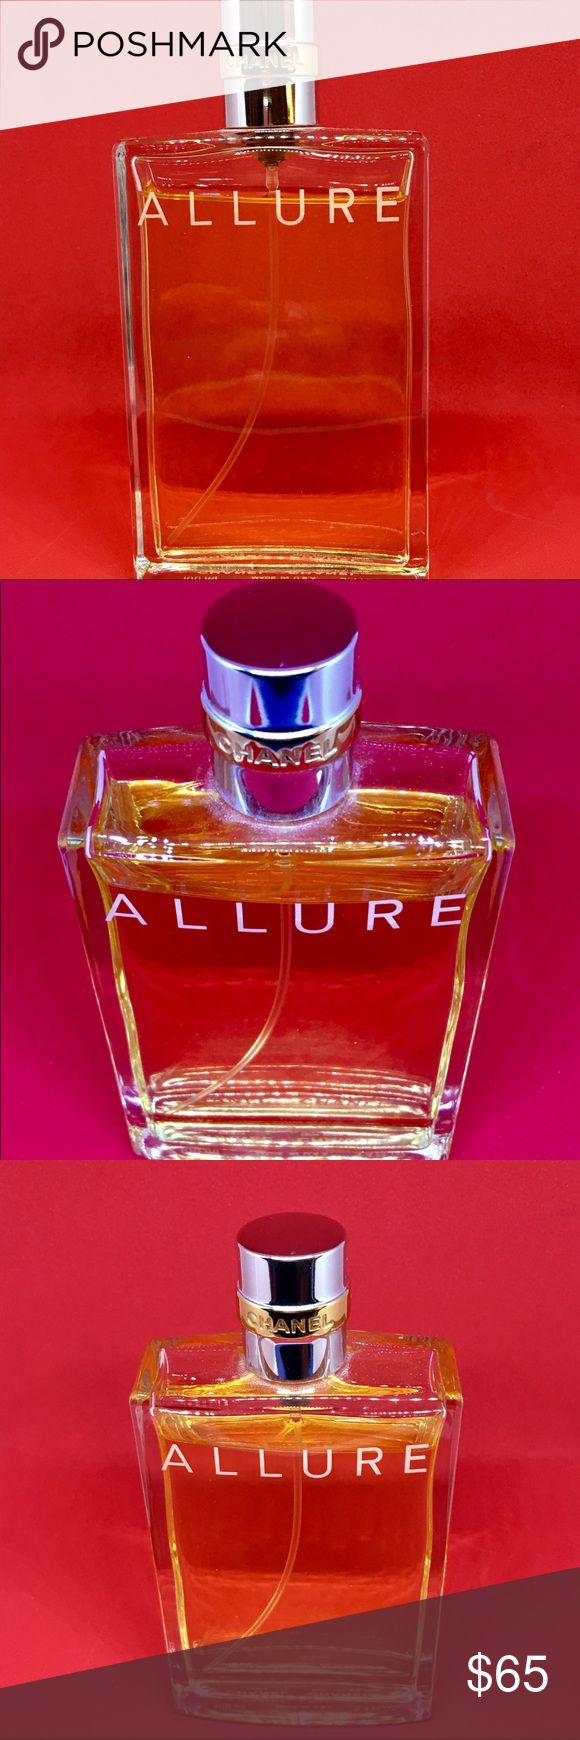 Chanel 💕ALLURE Eau De Toilette, 3.4 oz Chanel 💕ALLURE Eau De Toilette, 3.4 oz Description Clean and sheer, warm and sexy. Difficult to define, impossible to resist. Lighter, more relaxed fragrance form is designed for lavish use all over the body.  Only worn twice as shown in the pictures above brand new product!! Message me for any questions!! ❤️ Happy holidays!!! ☺️🌲❄️🤶🎅 CHANEL Other